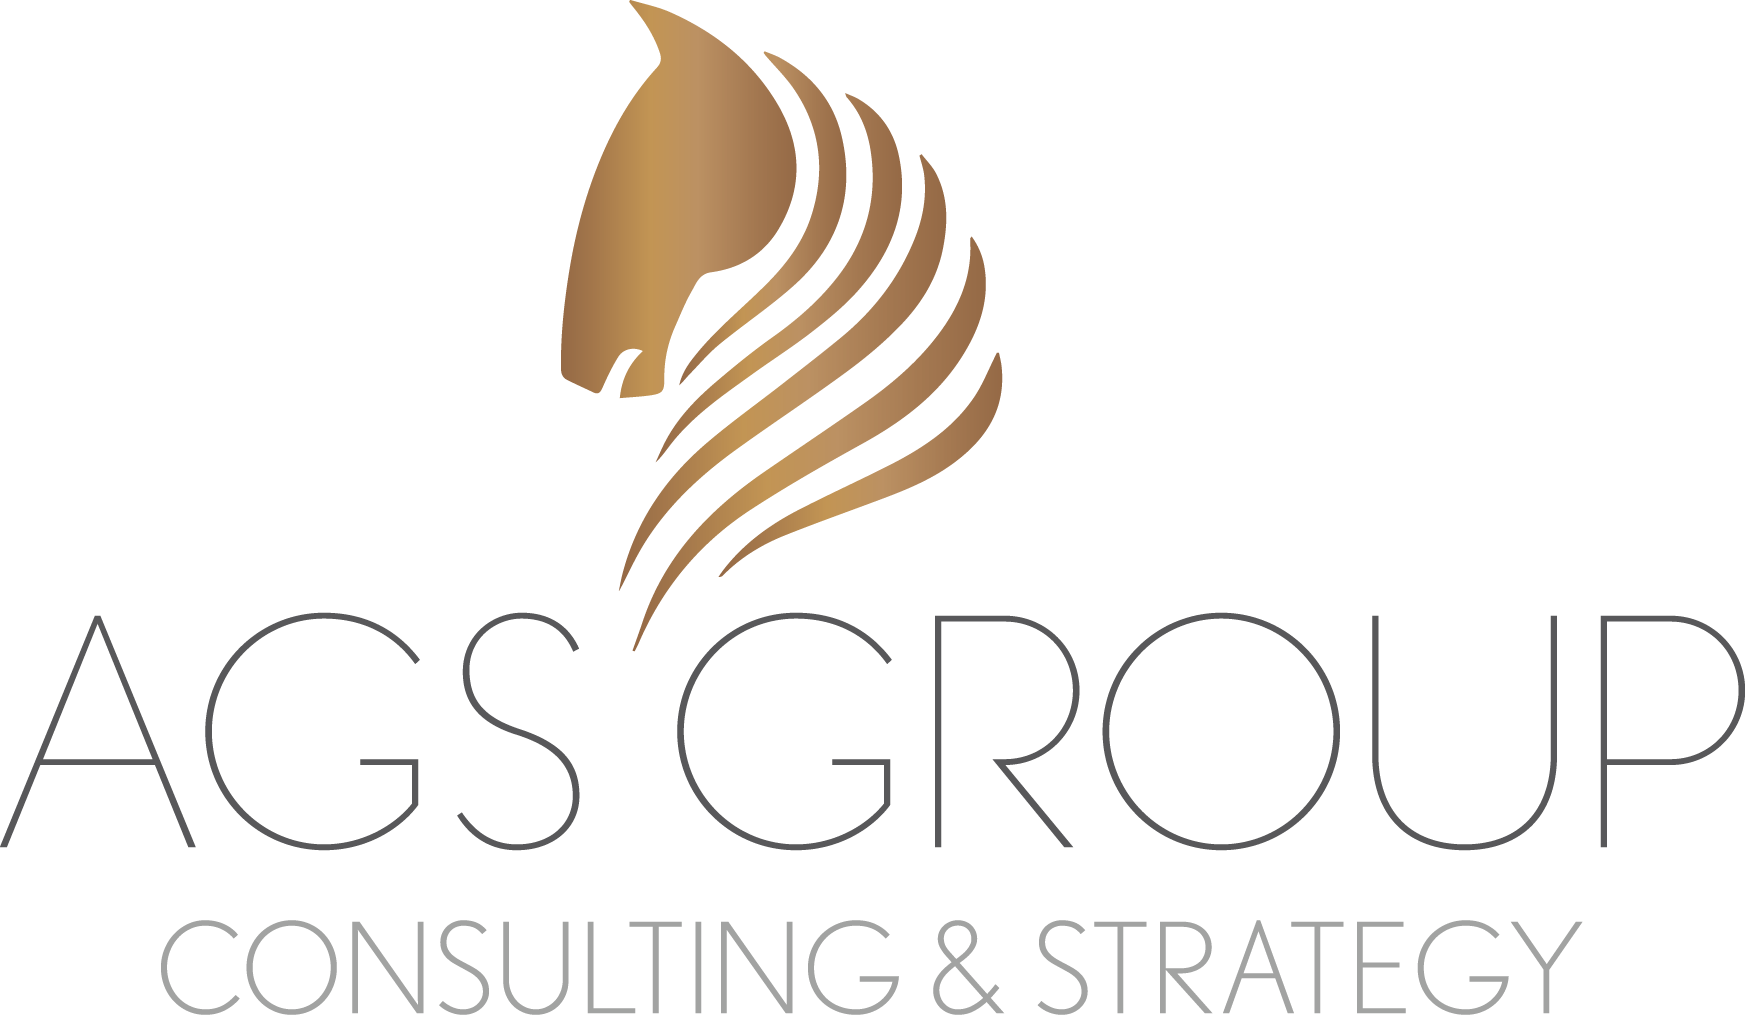 anstiss investment groups sluggersppg